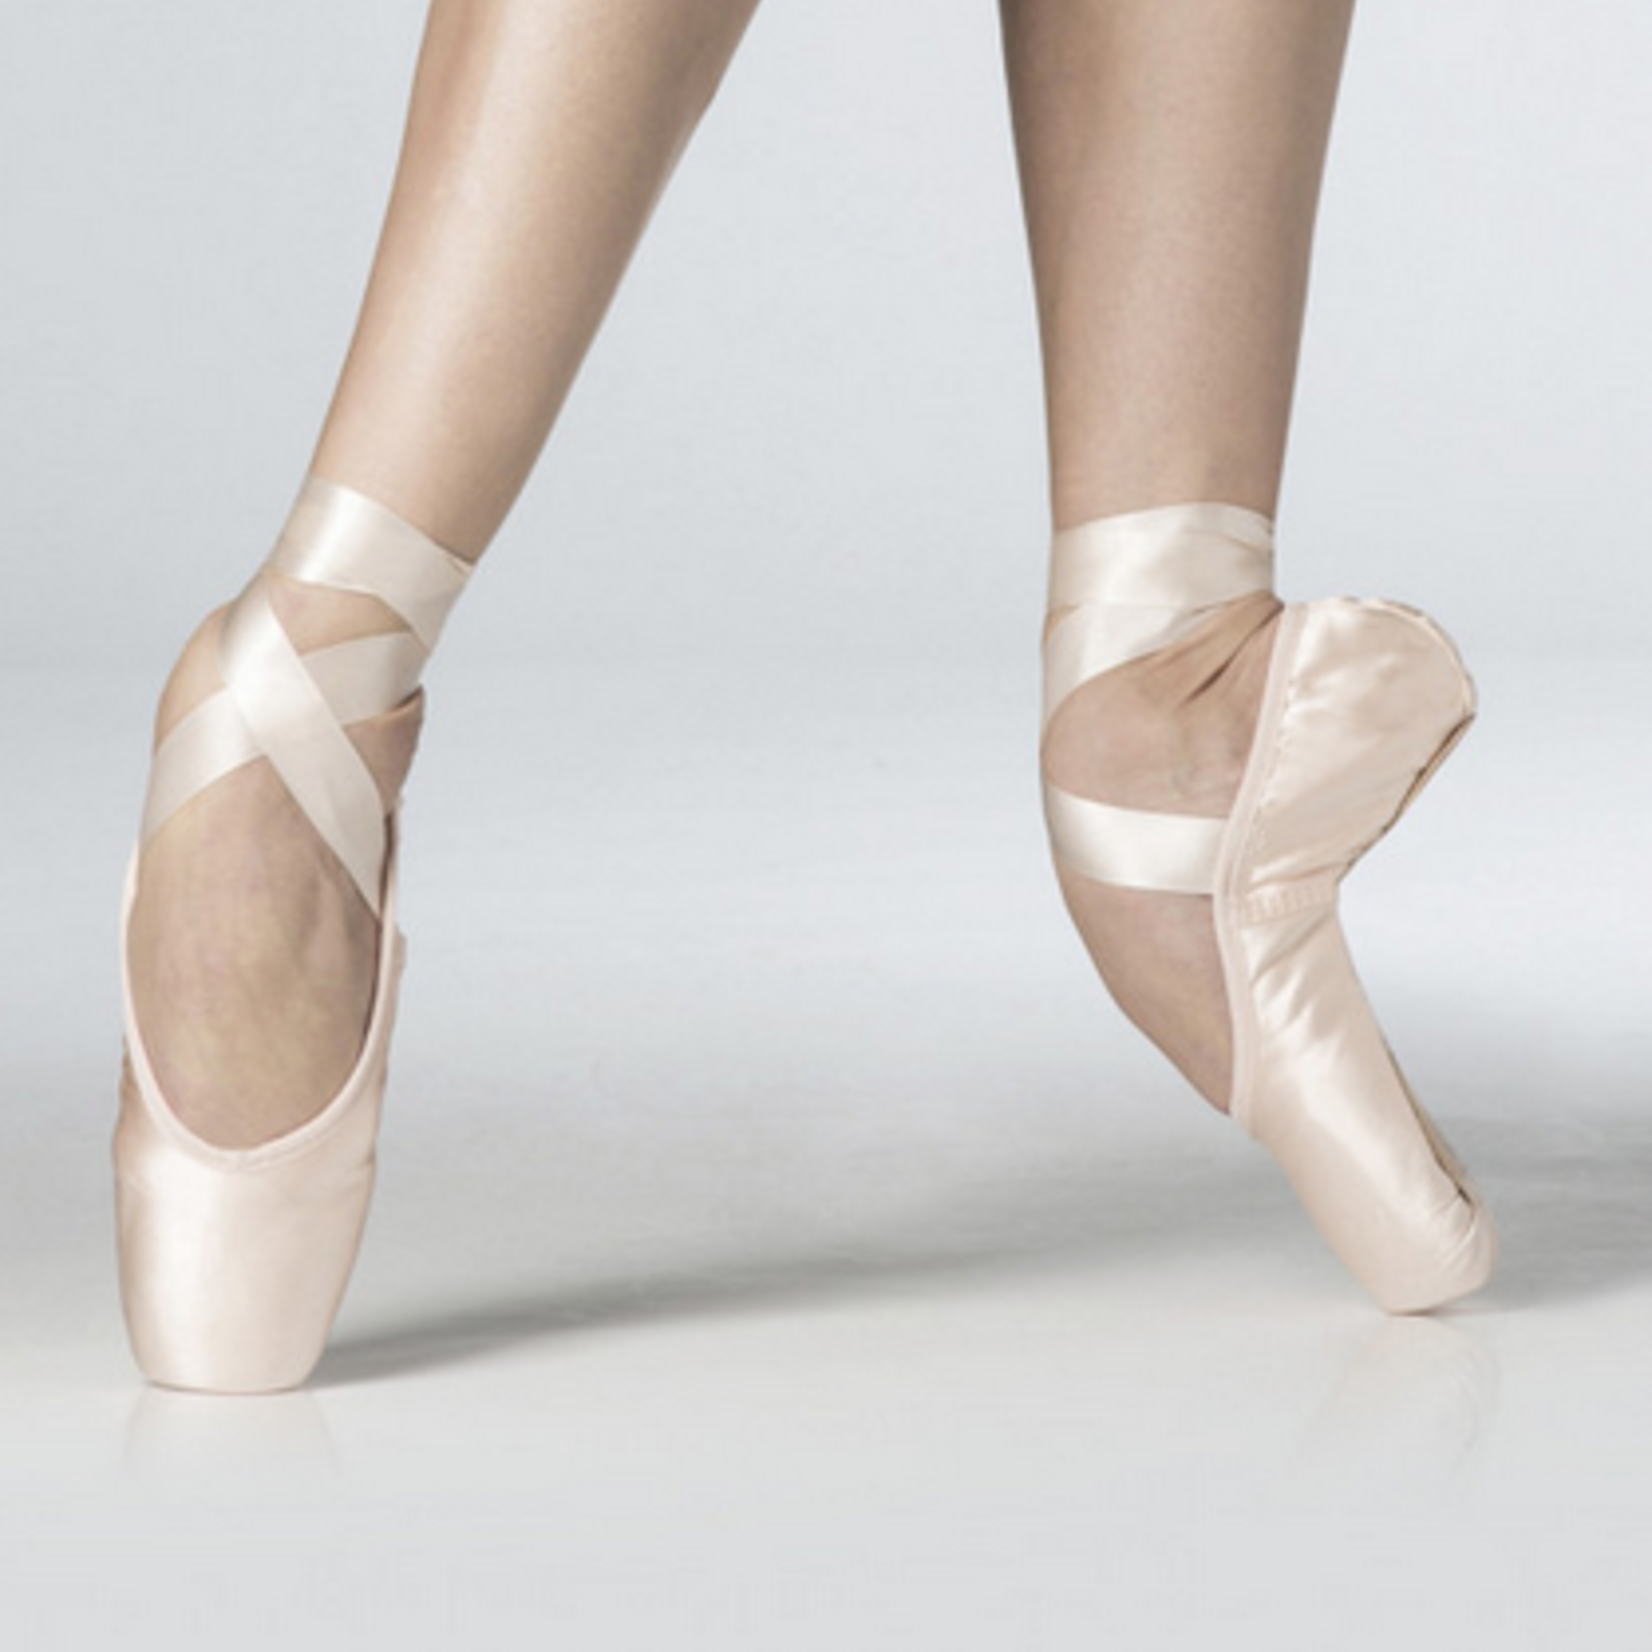 Wear Moi Wear Moi La Pointe Pointe Shoes